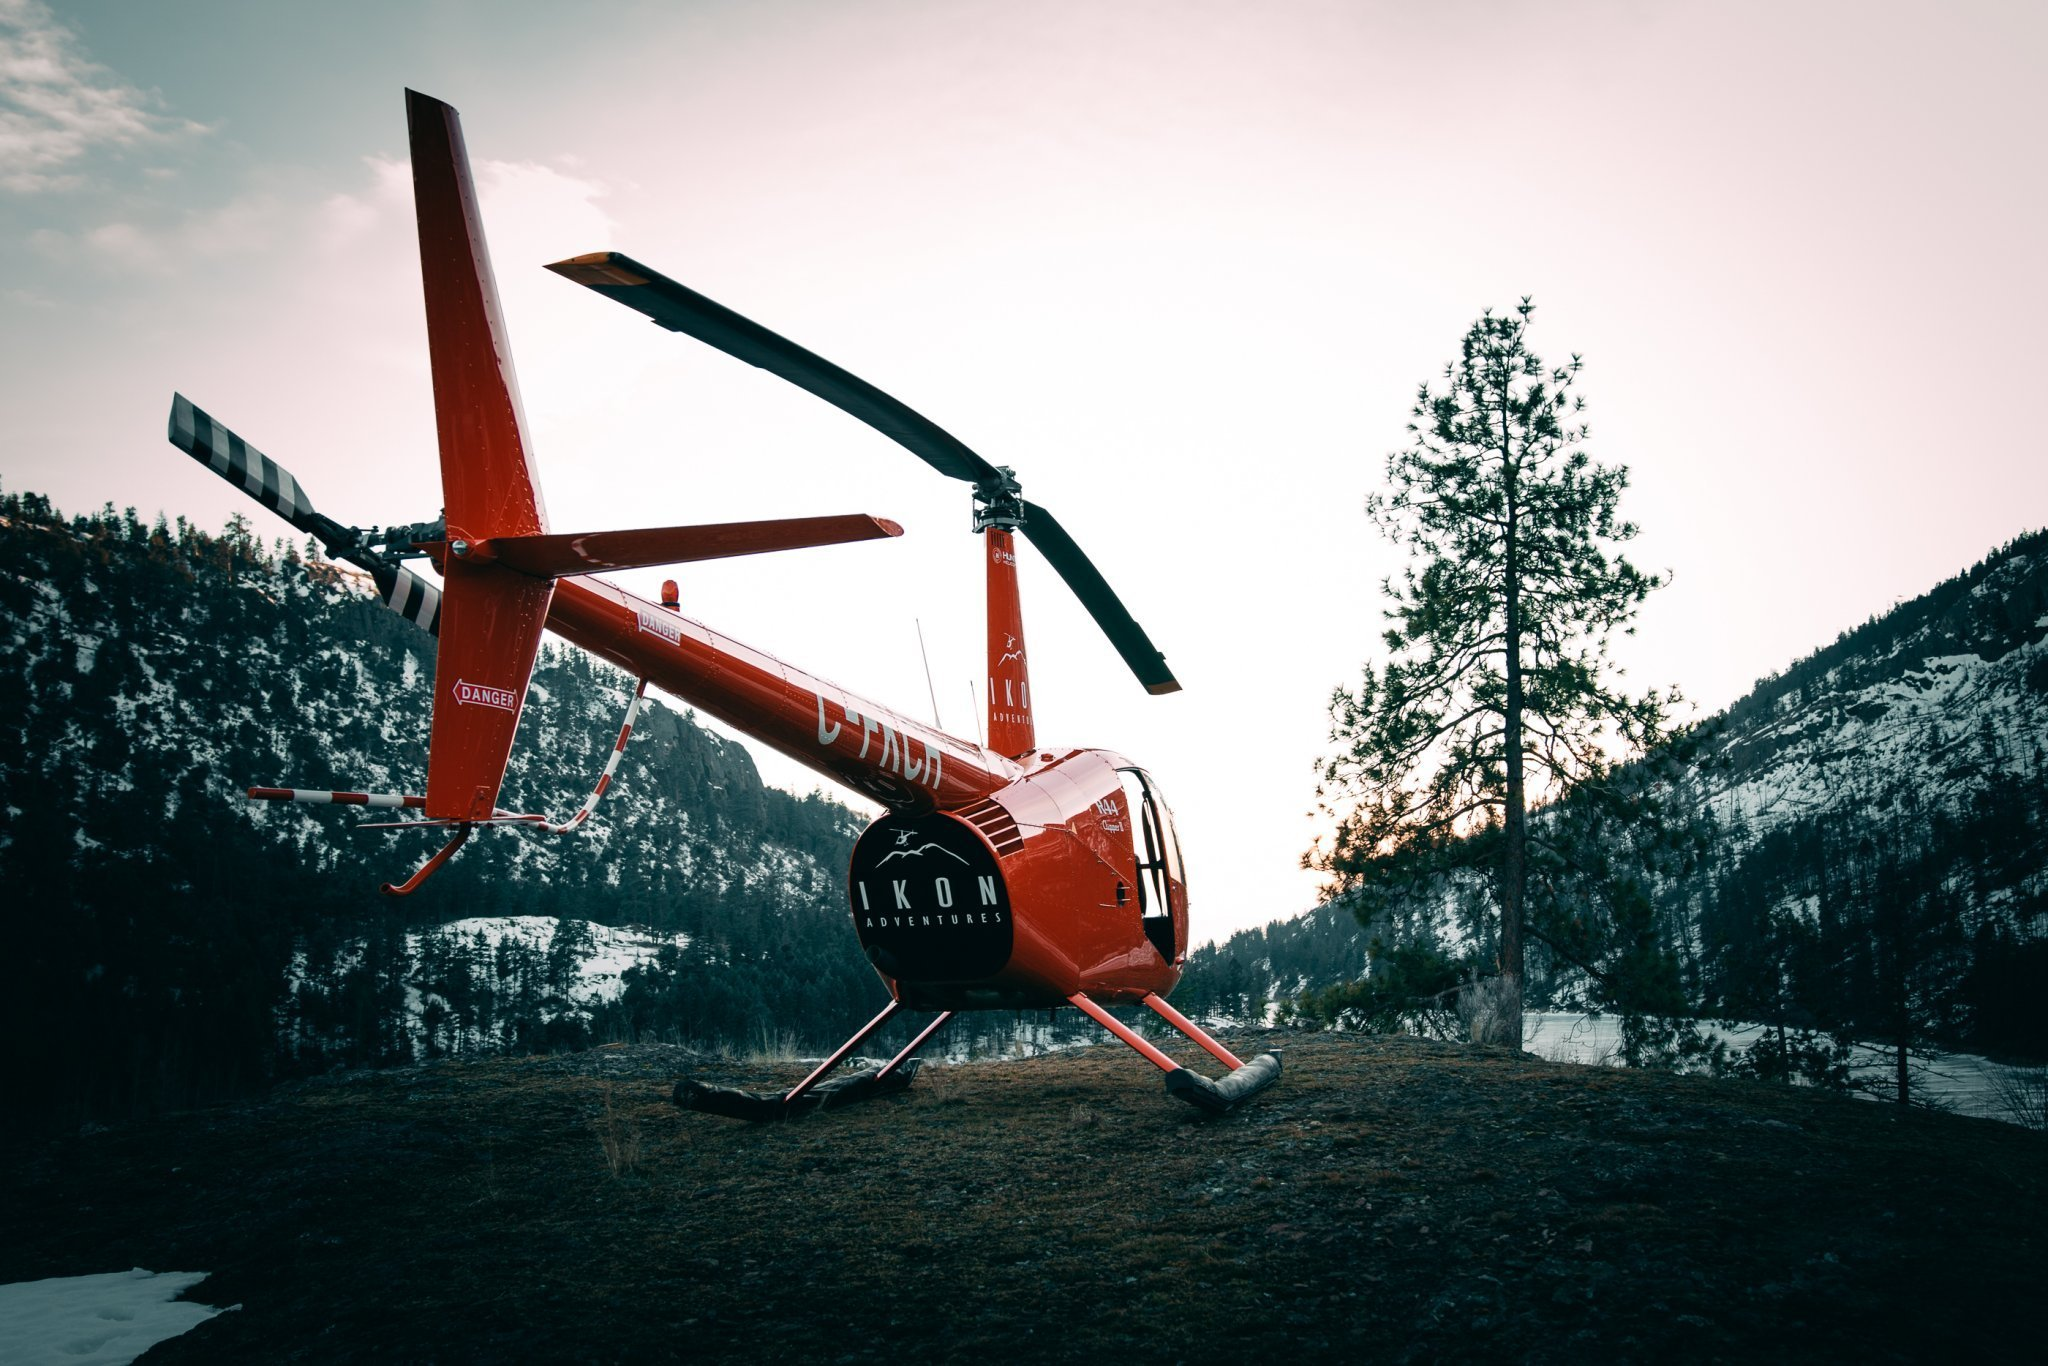 Hiilite | Marketing, SEO, Branding, Web & Graphic Design The helicopter of Ikon Adventures in Kelowna perched on a mountain near Kelowna, British Columbia